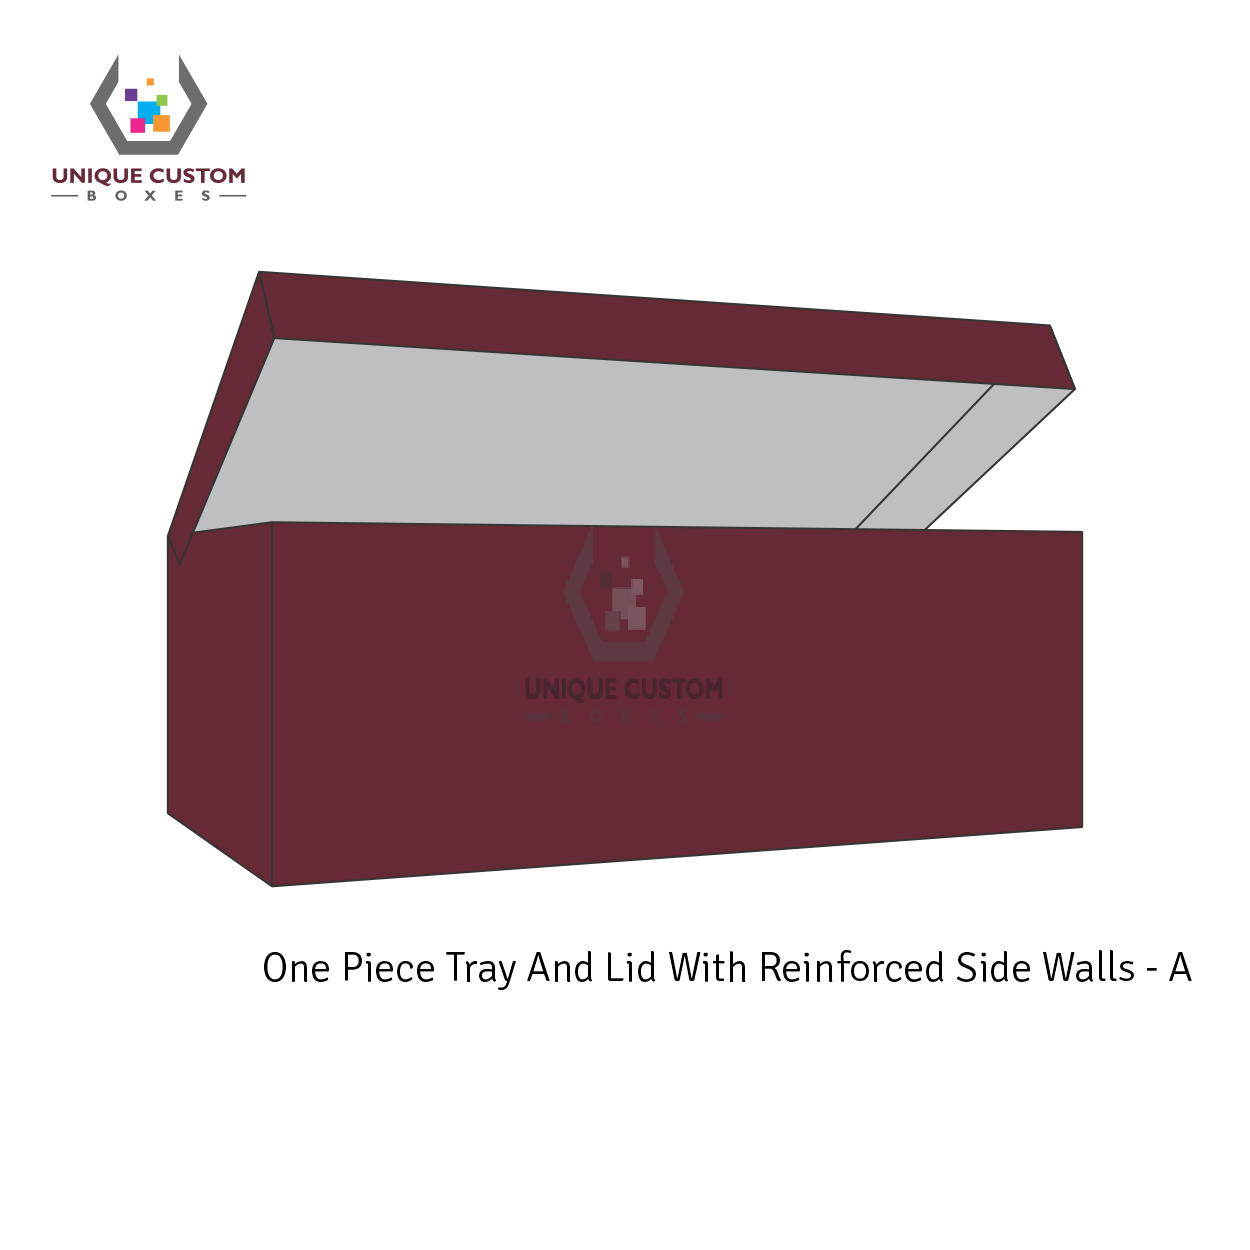 One-Piece-Tray-And-Lid-With-Reinforced-Side-Walls-1